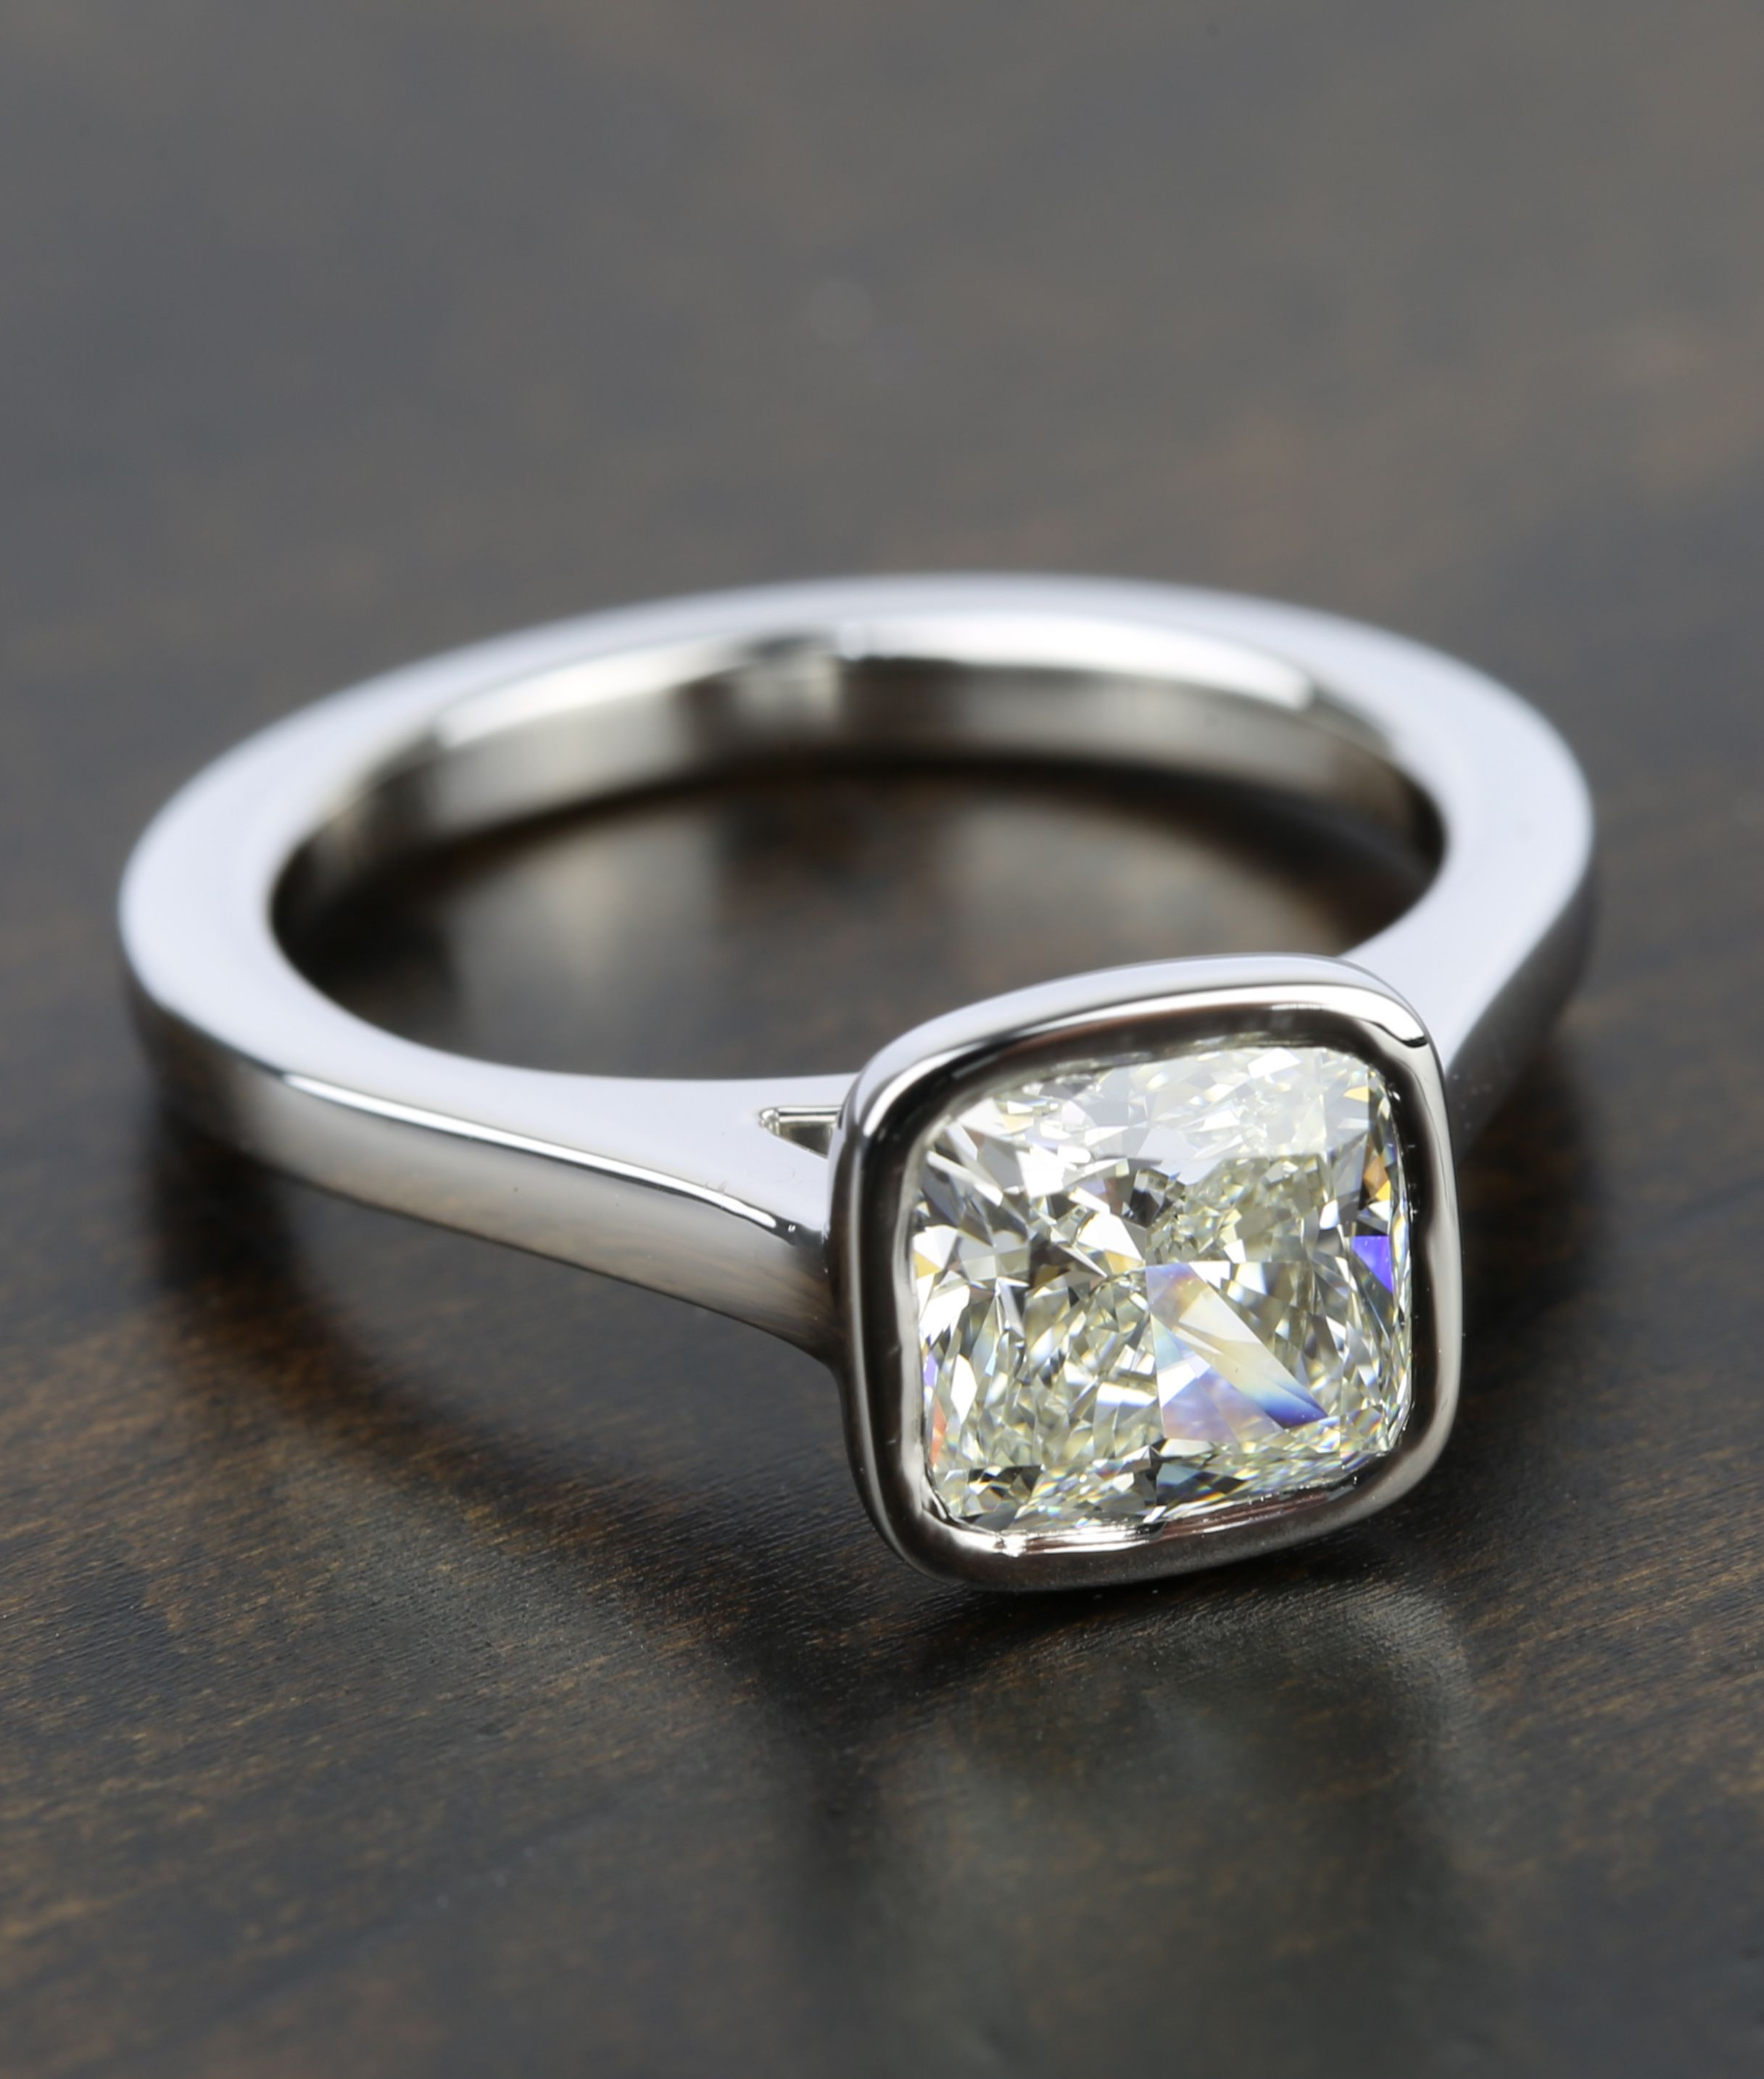 16721c8066c1 Additionally the bezel setting gives the allusion of added size to the  center Cushion cut diamond.